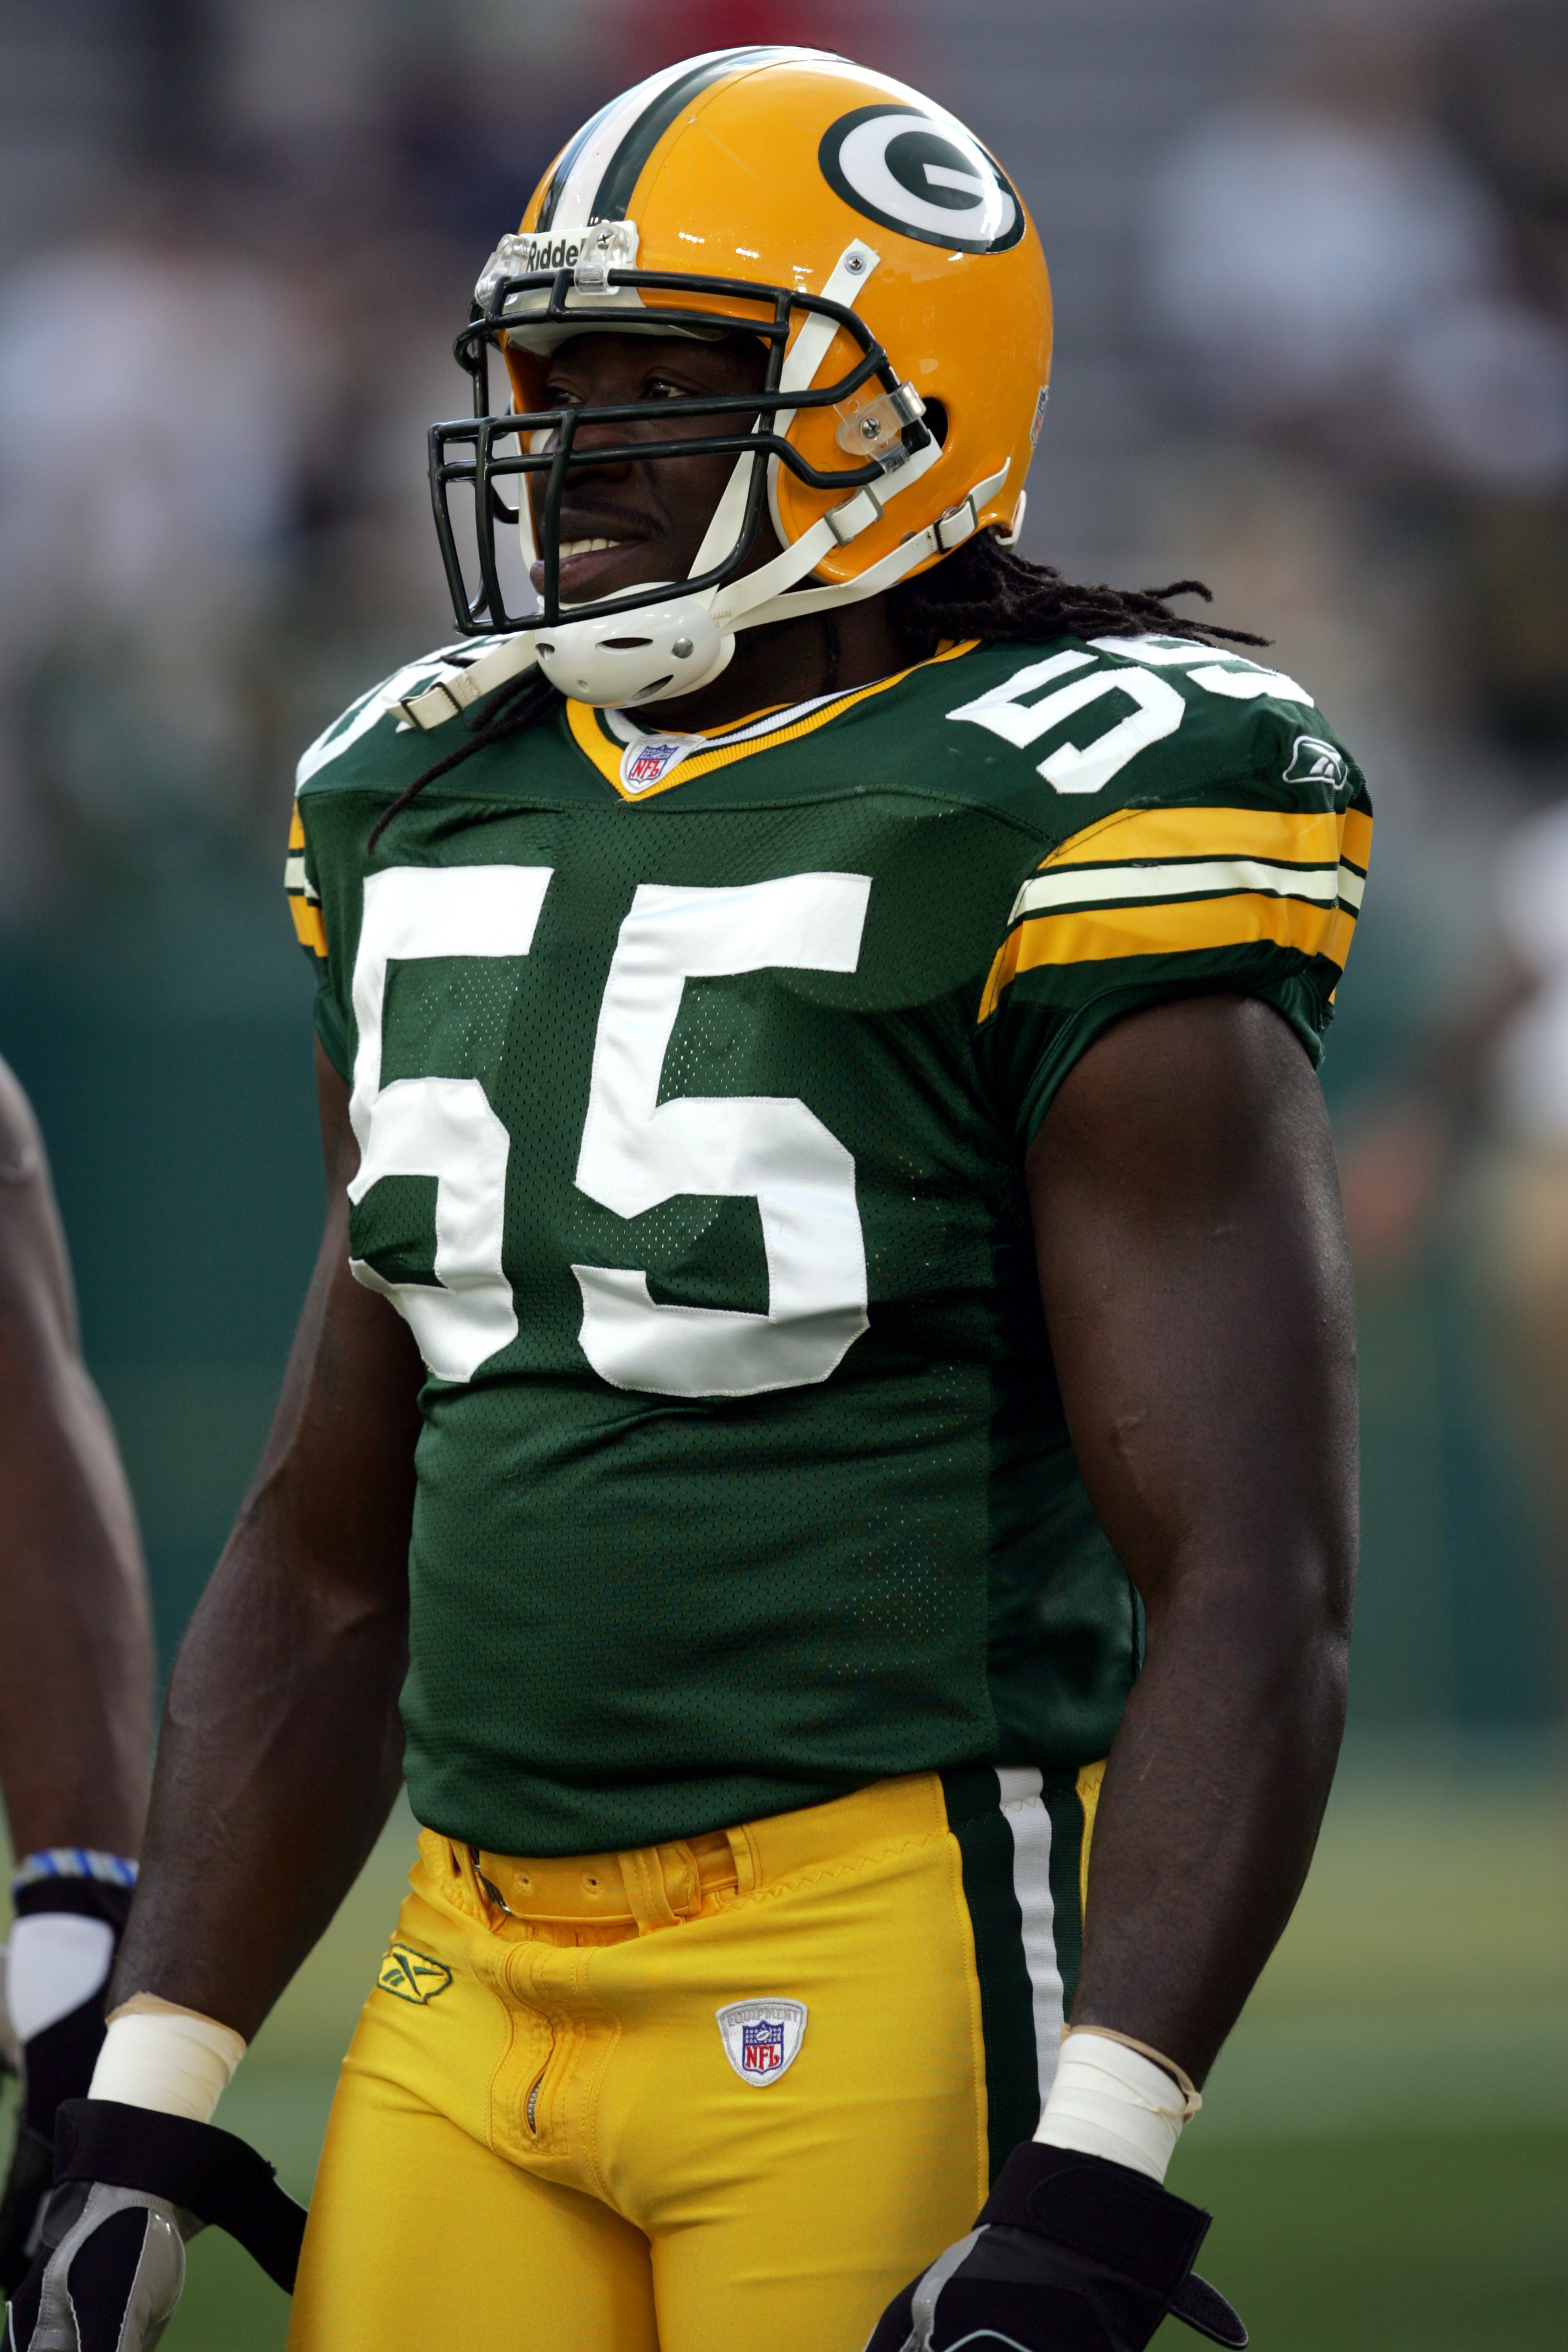 GREEN BAY, WI - AUGUST 19:  Linebacker Abdul Hodge #55 of the Green Bay Packers stands on the field during the preseason game against the Atlanta Falcons on August 19, 2006 at Lambeau Field in Green Bay, Wisconsin. The Packers won 38-10. (Photo by Jonatha